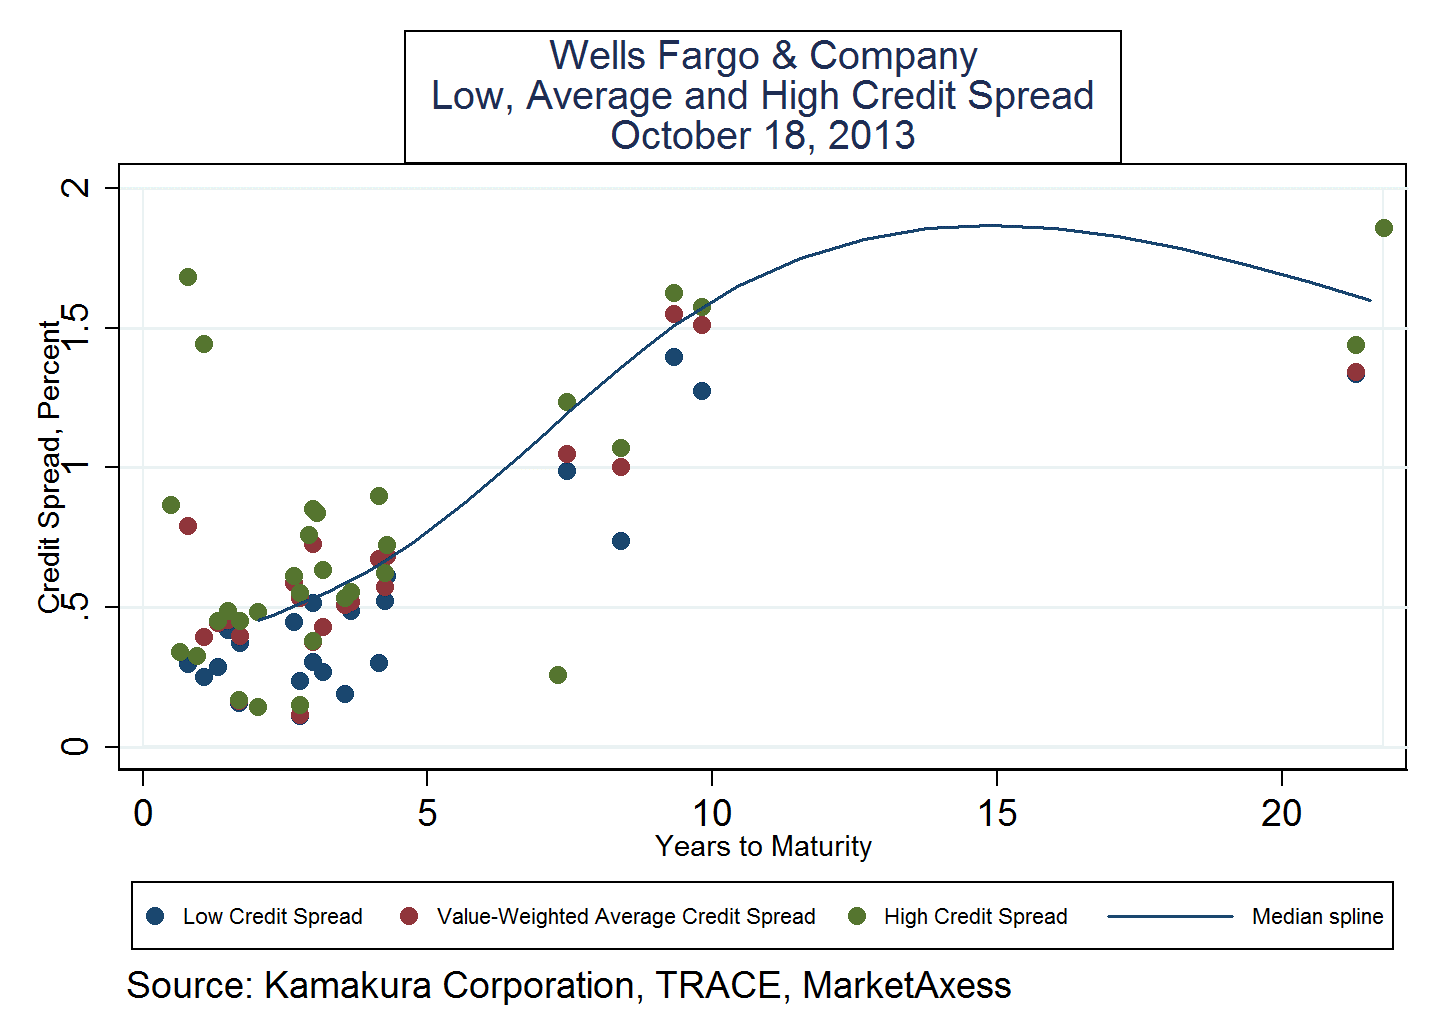 risk analysis for wells fargo Find out how riskgrades tm can measure the financial risk of wells fargo & company (wfc) compared to other stocks using the stock analysis below.